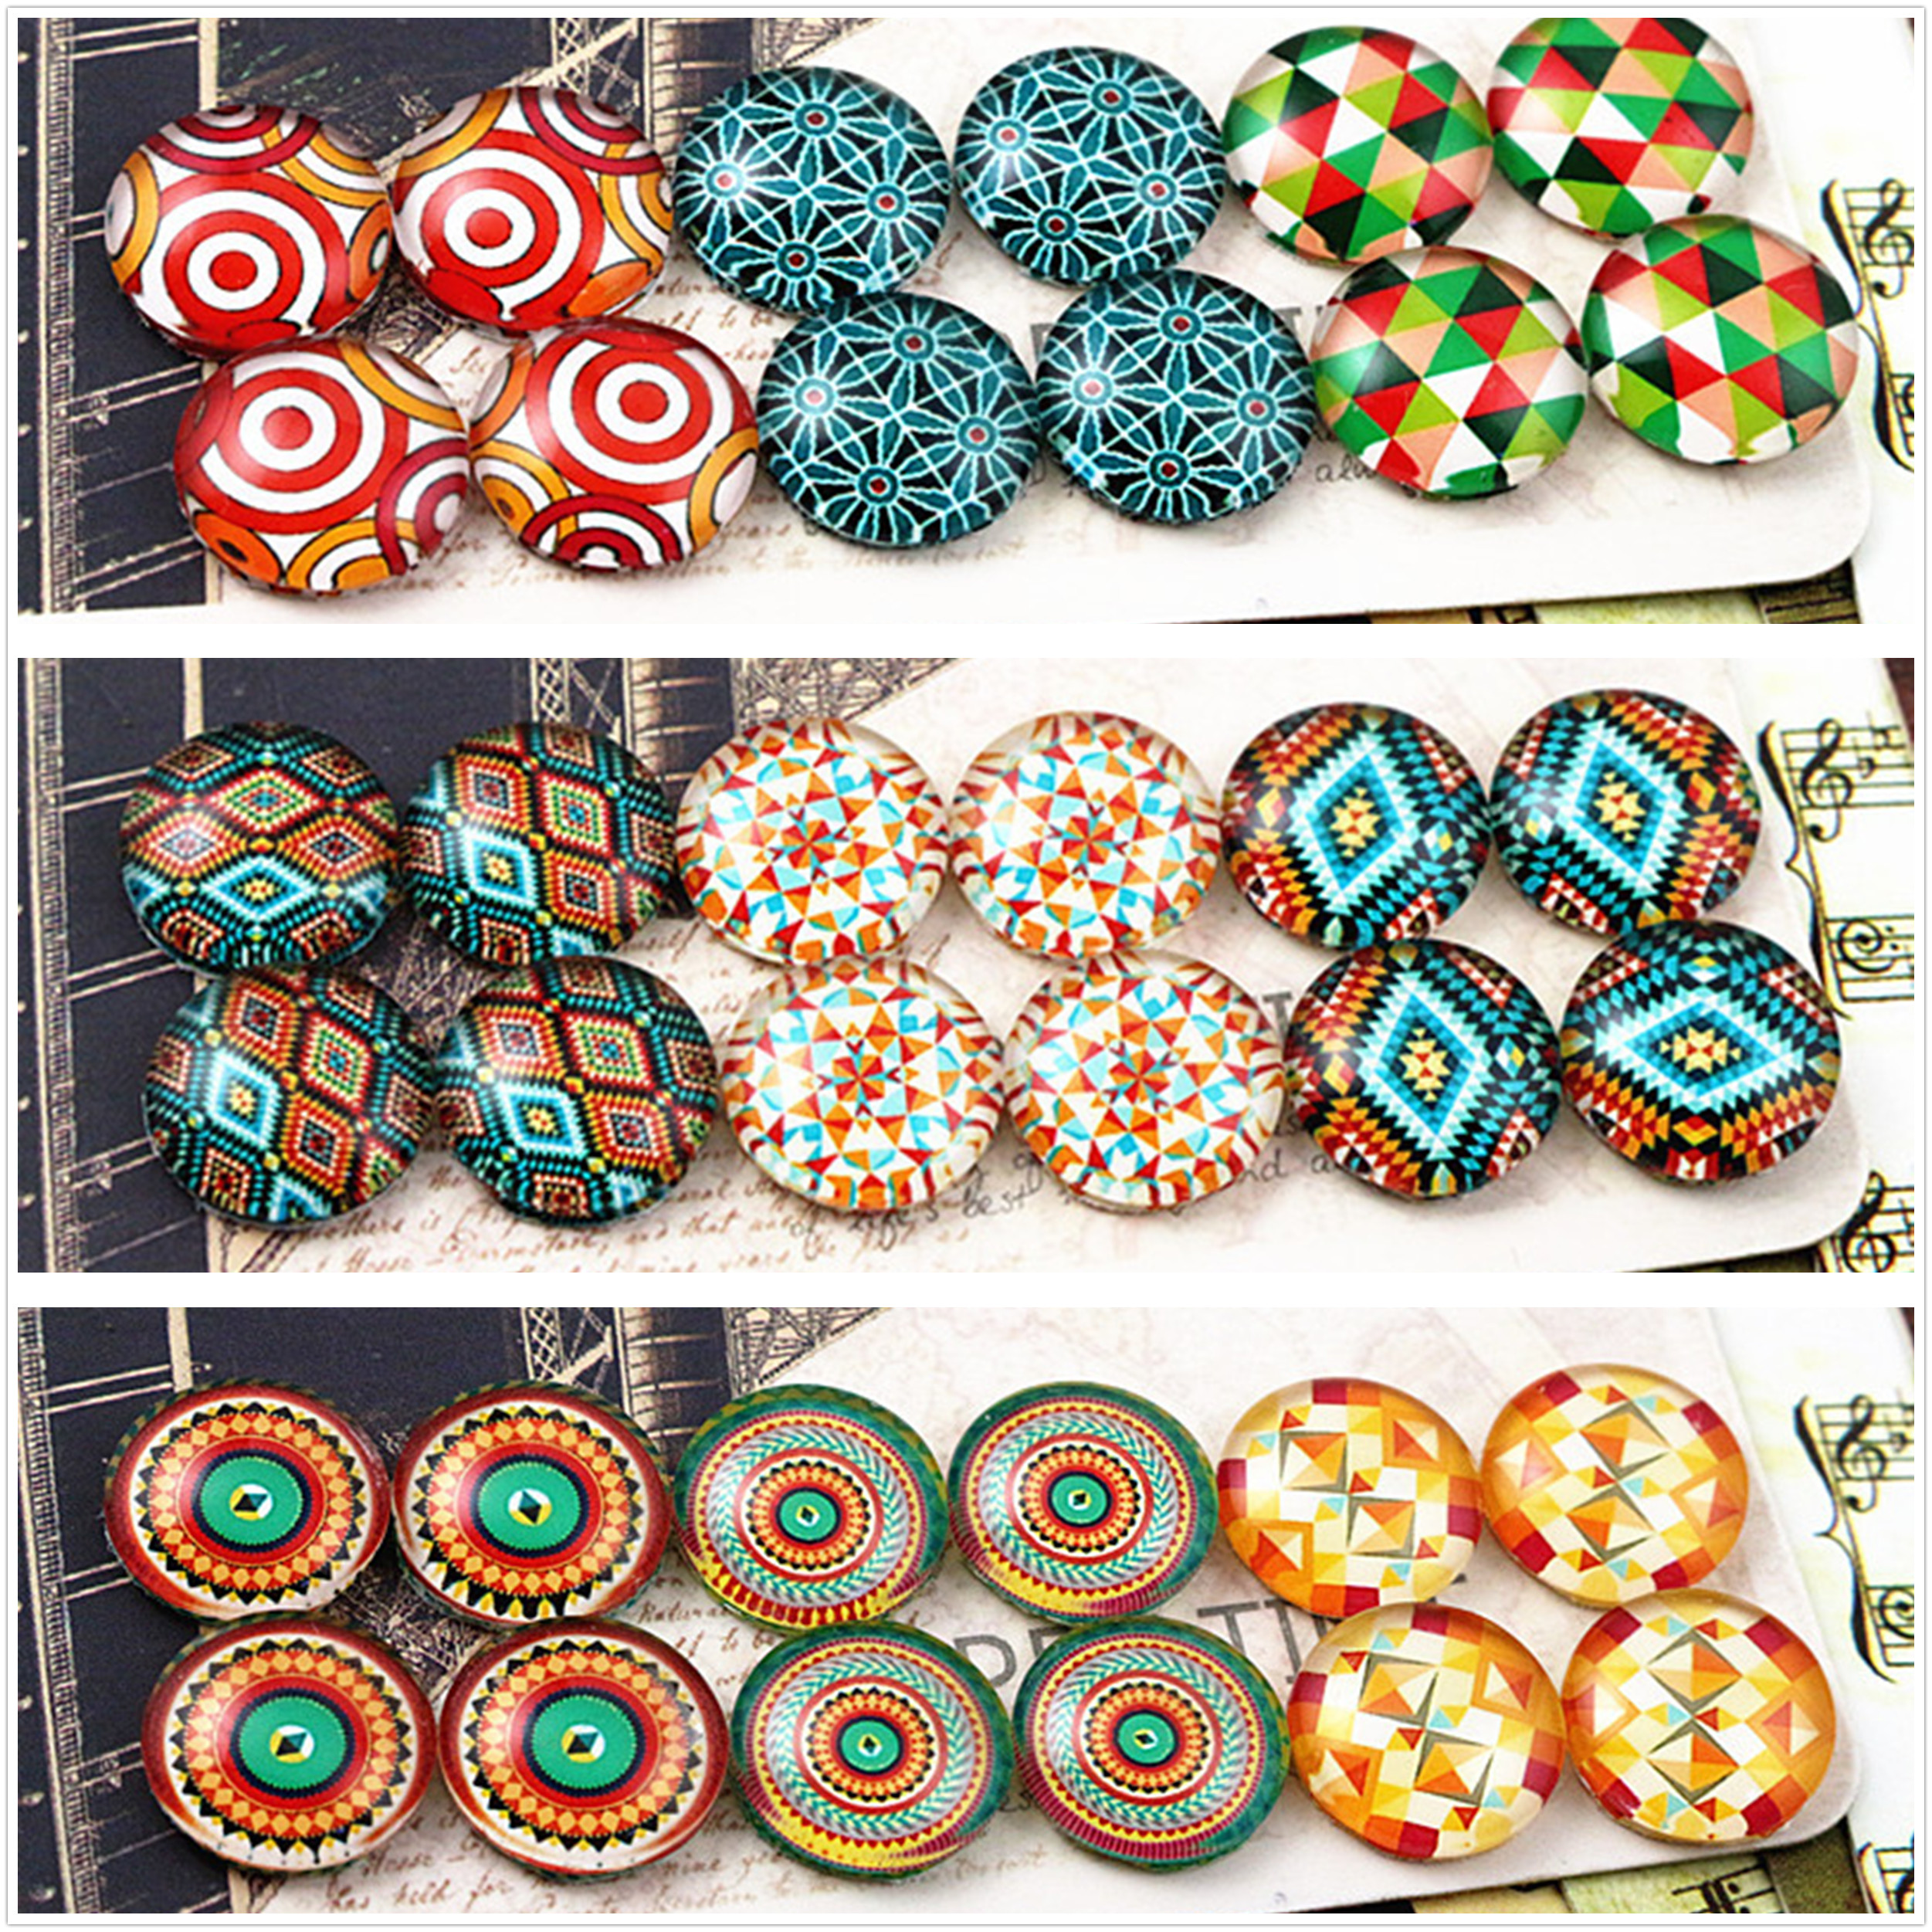 12pcs/lot (One Set) Three Style 12mm Classic Totem Handmade Glass Cabochons Pattern Domed Jewelry Accessories Supplies